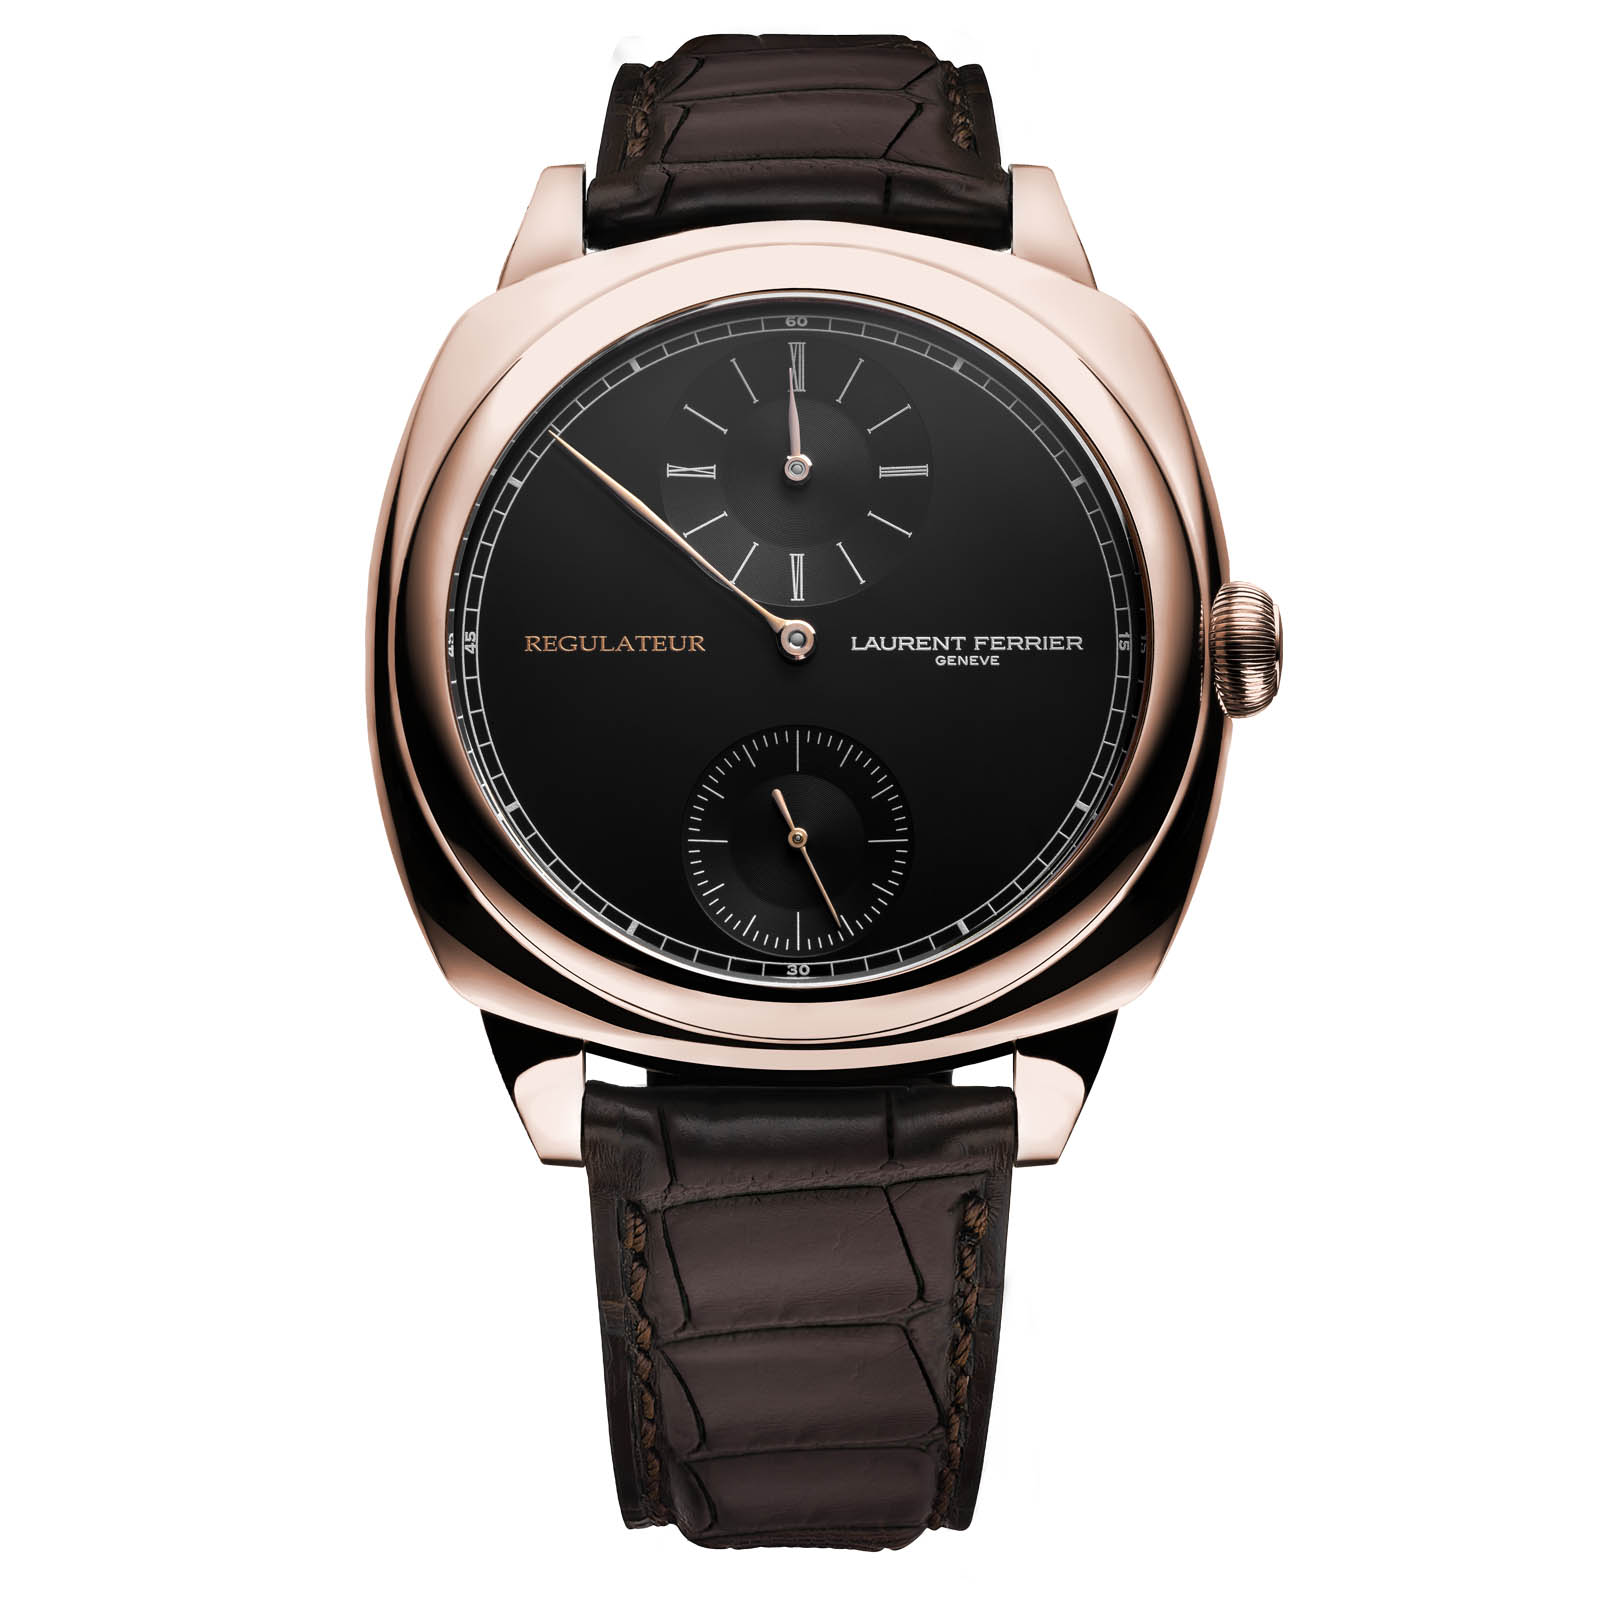 Laurent Ferrier Galet Square Regulateur Black